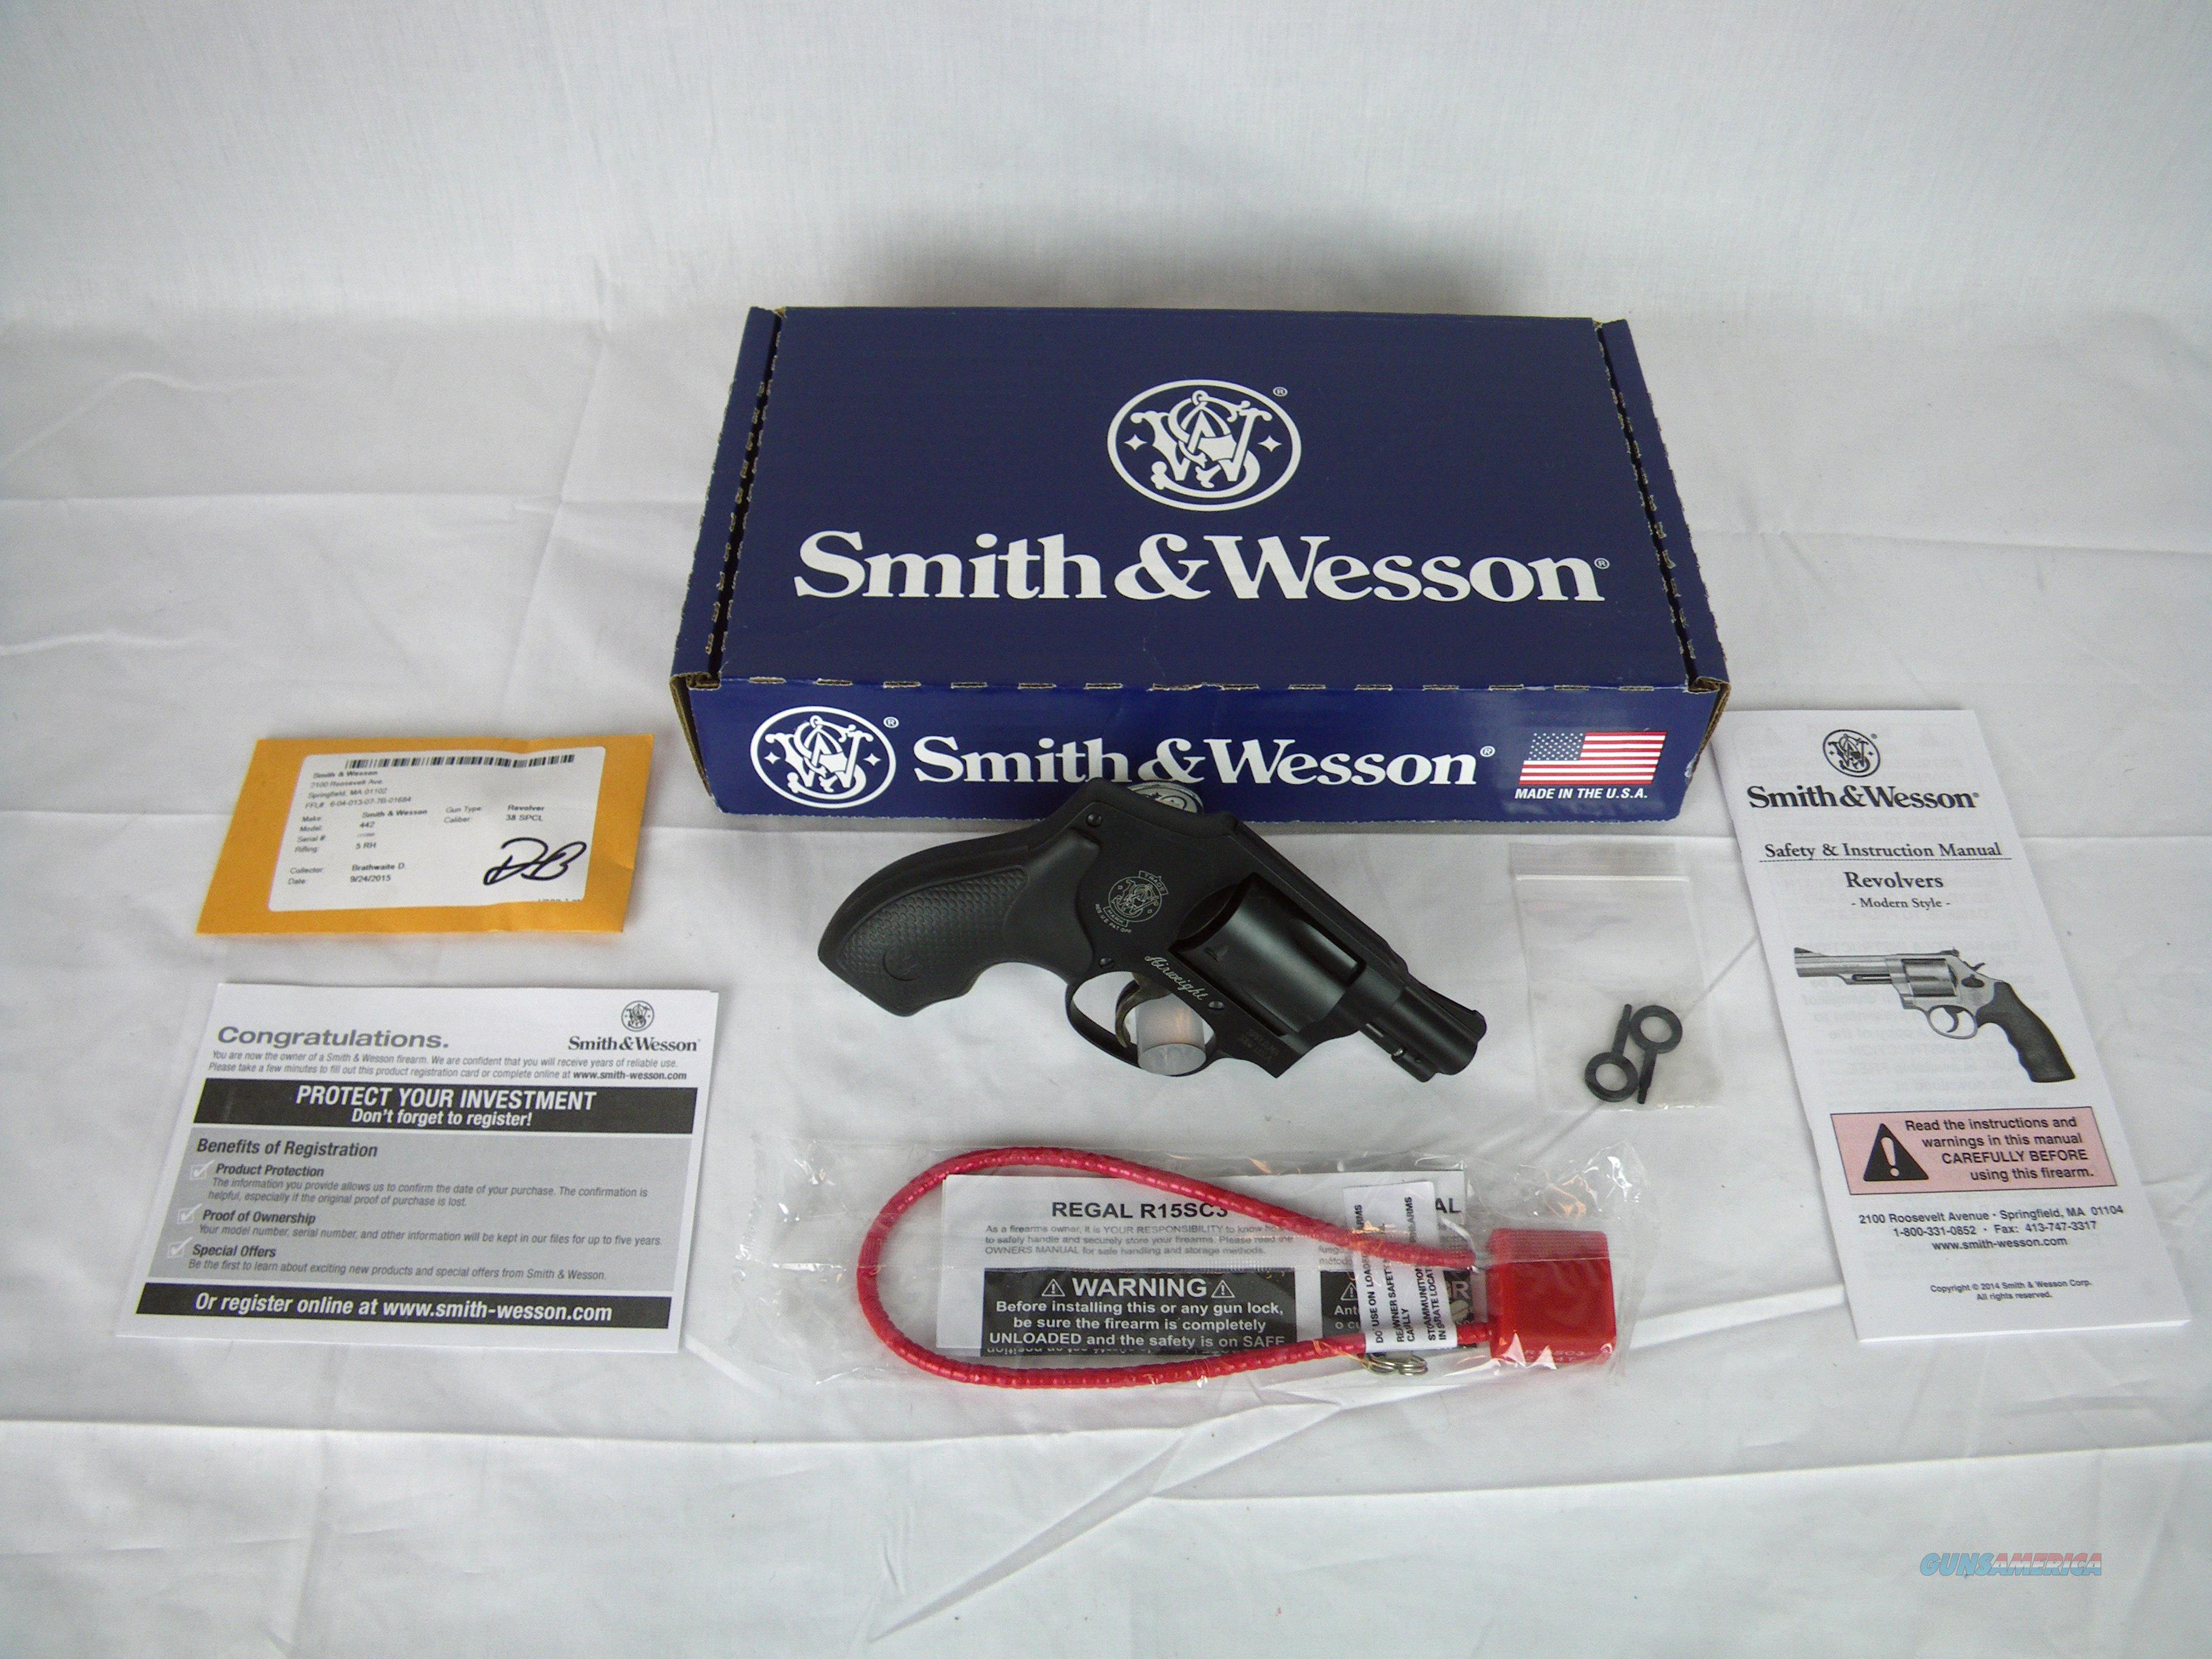 "Smith & Wesson Model 442 Airweight 38 Spl+P 1.875"" #162810  Guns > Pistols > Smith & Wesson Revolvers > Pocket Pistols"